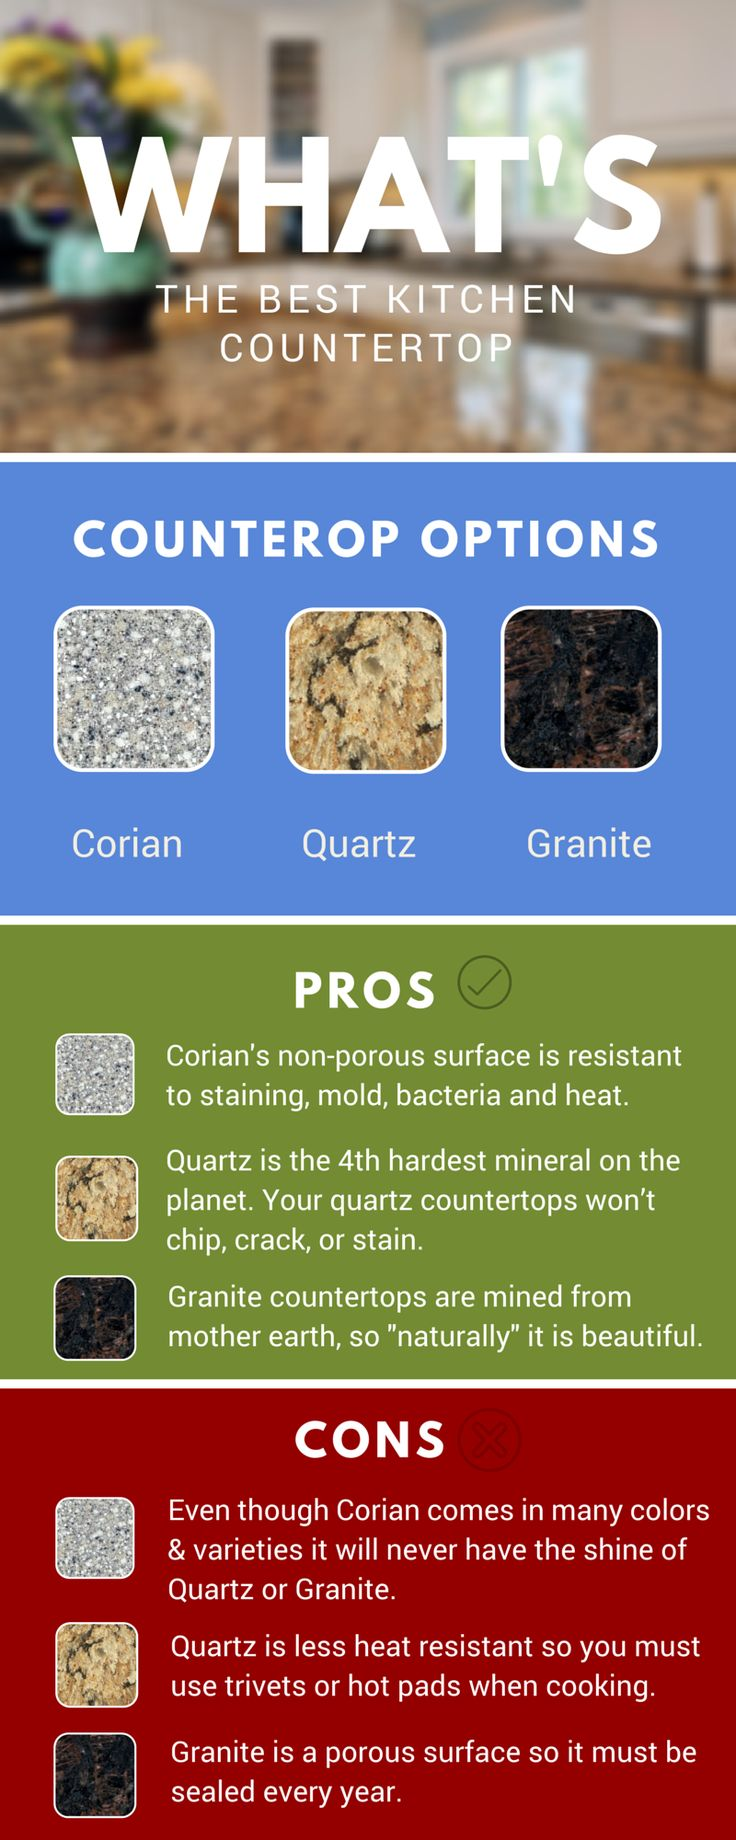 Grigio msi quartz denver shower doors amp denver granite countertops - See The Differences Of Corian Quartz And Granite Countertops Infographic